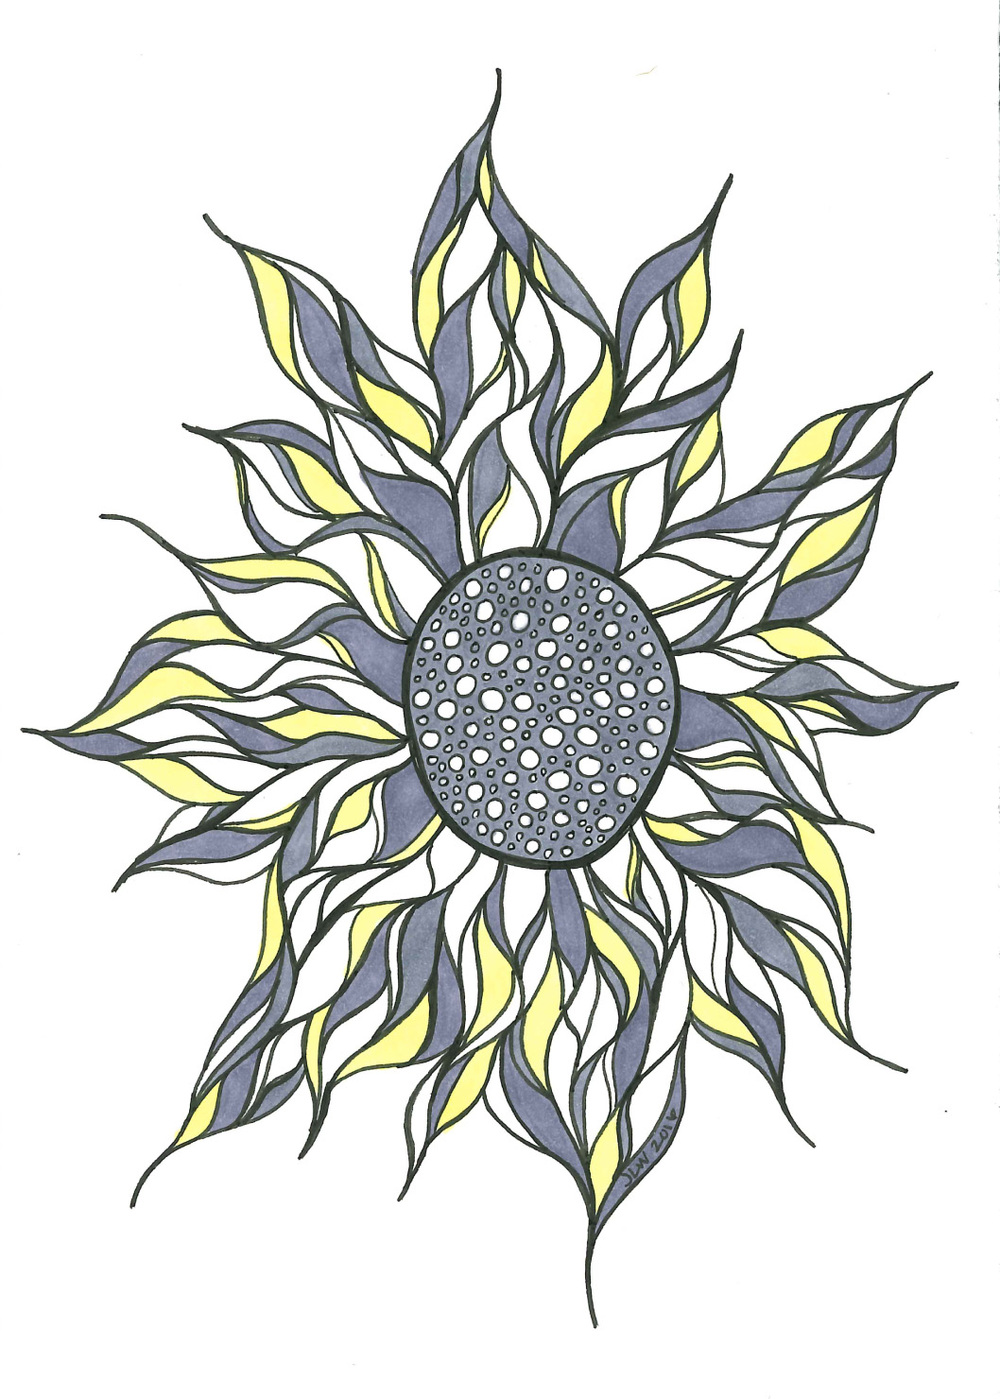 Sunflower, 2016, Ink Pen & Marker